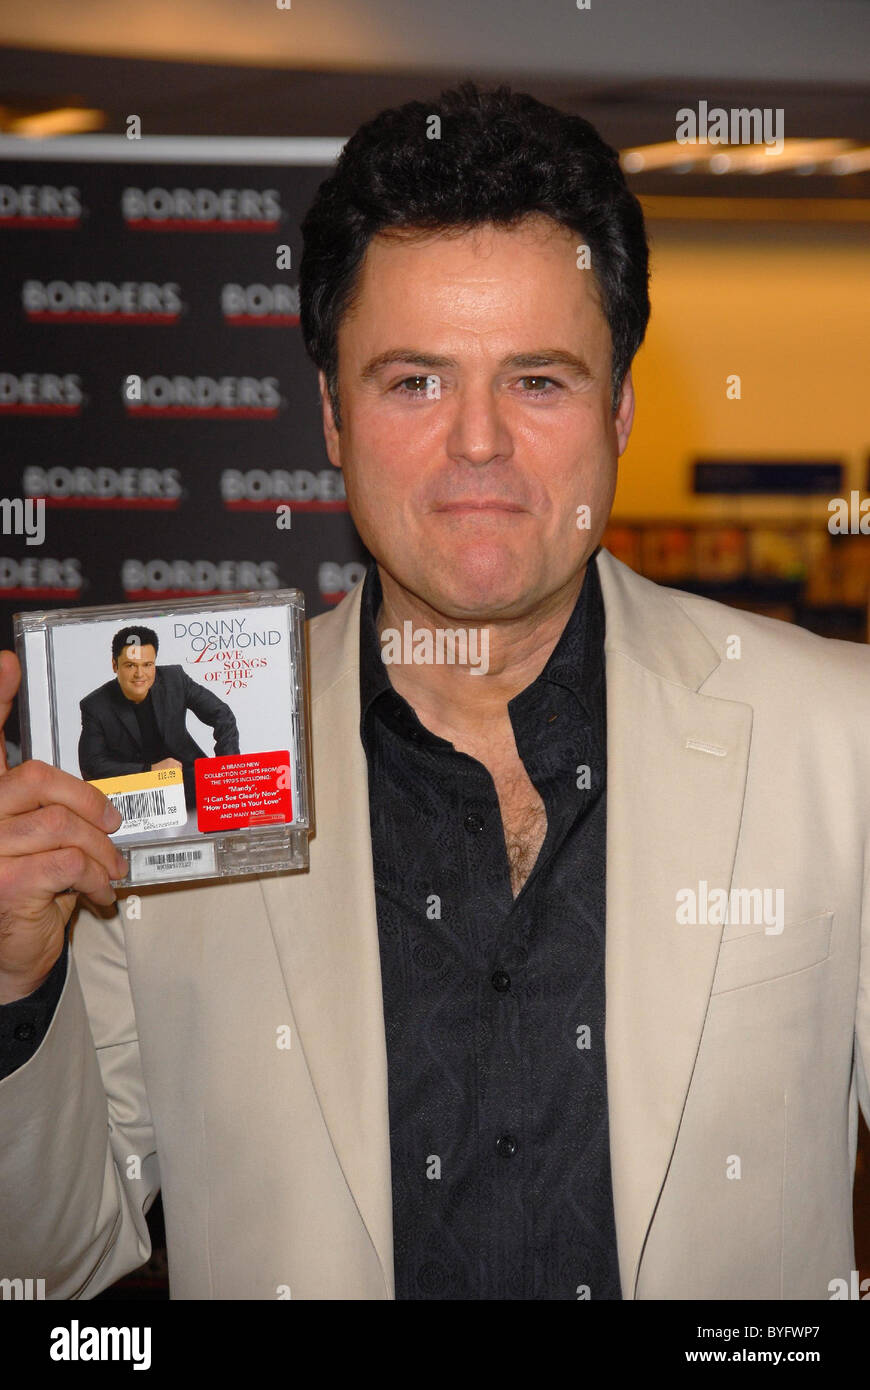 Donny Osmond signs copies of his new CD 'Love Songs of the 70s' at